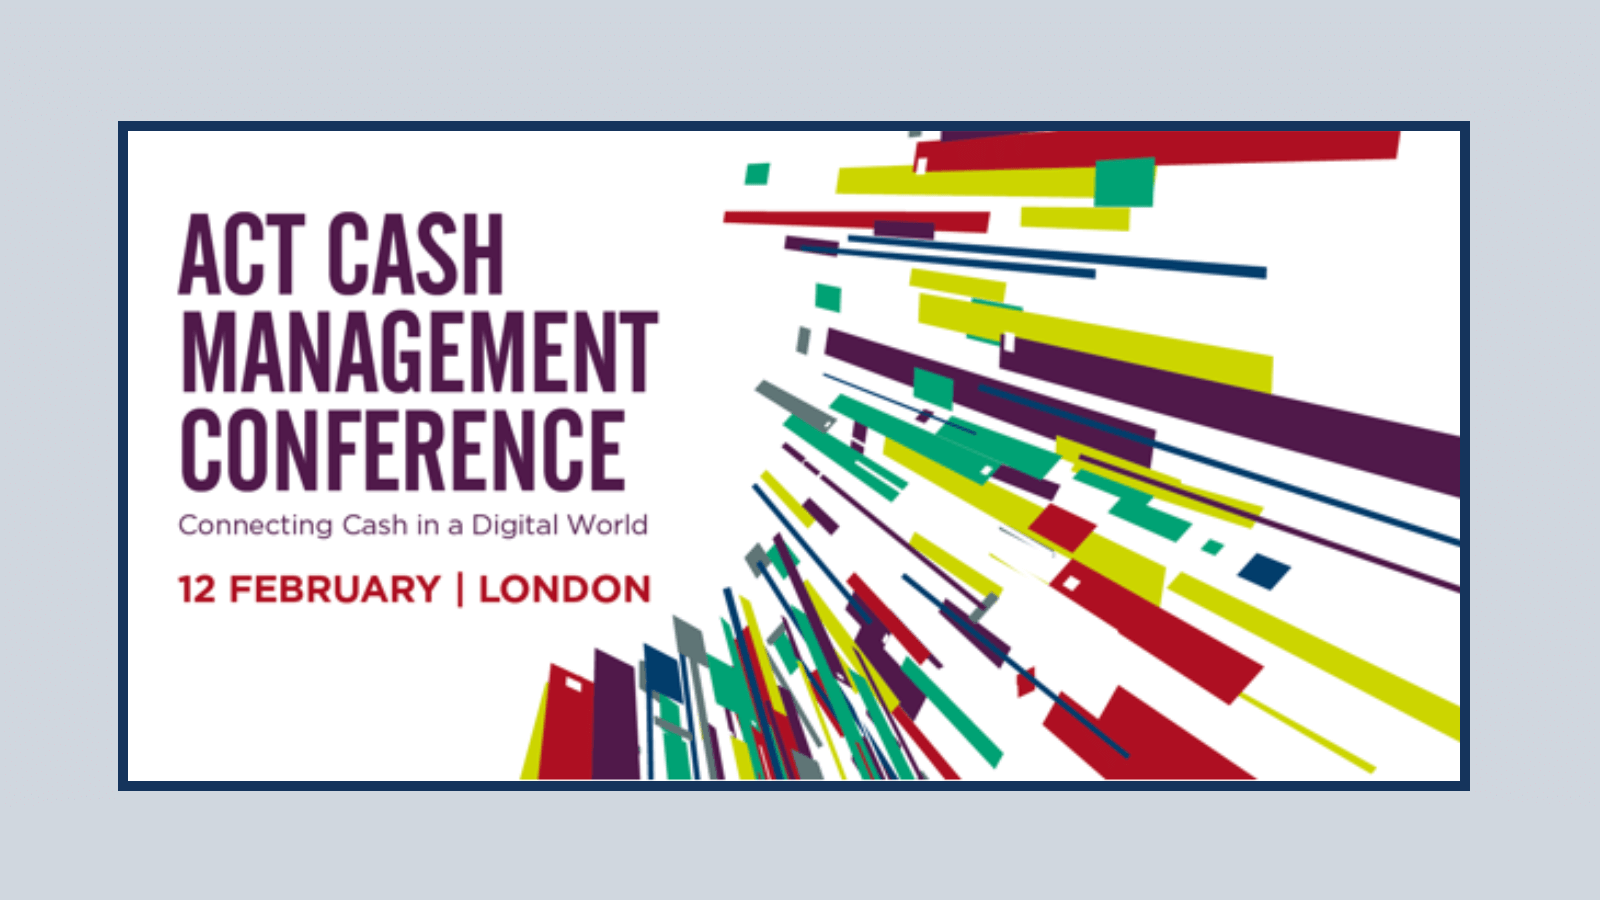 ACT Cash Management Conference 2019